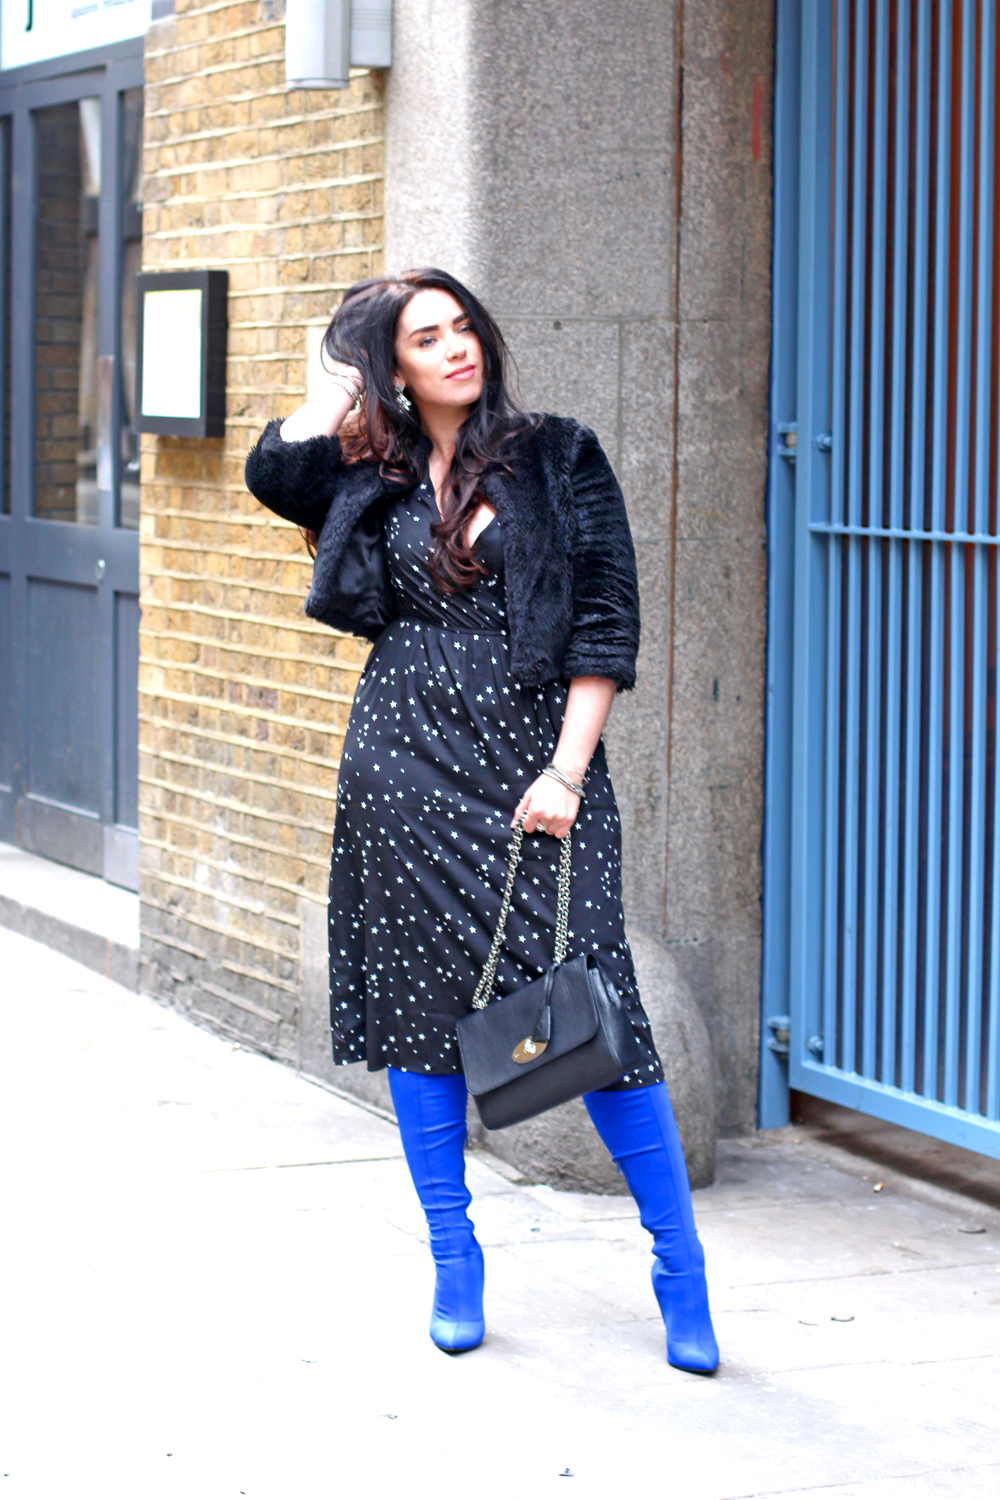 Emma Louise Layla in Boohoo star print dress and blue thigh high boots - UK style blogger